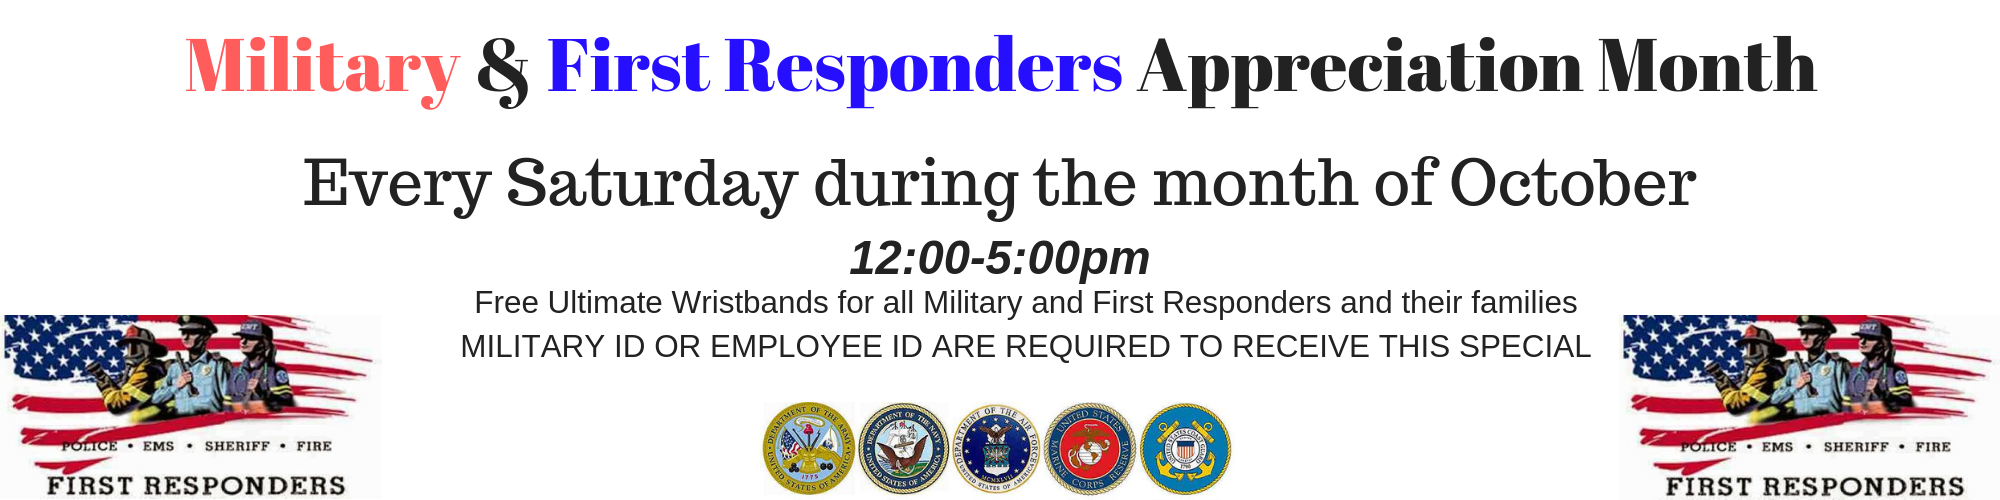 First Responders & Military Appreciation Month (1)